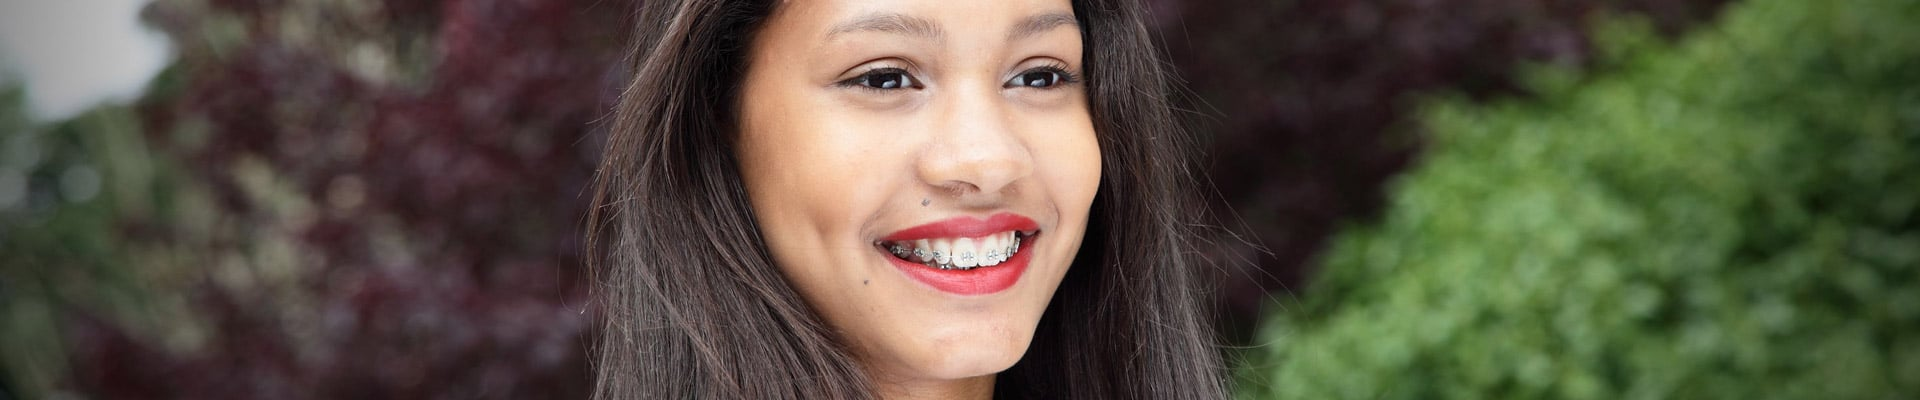 Types of braces Brace Connection in Downey, CA